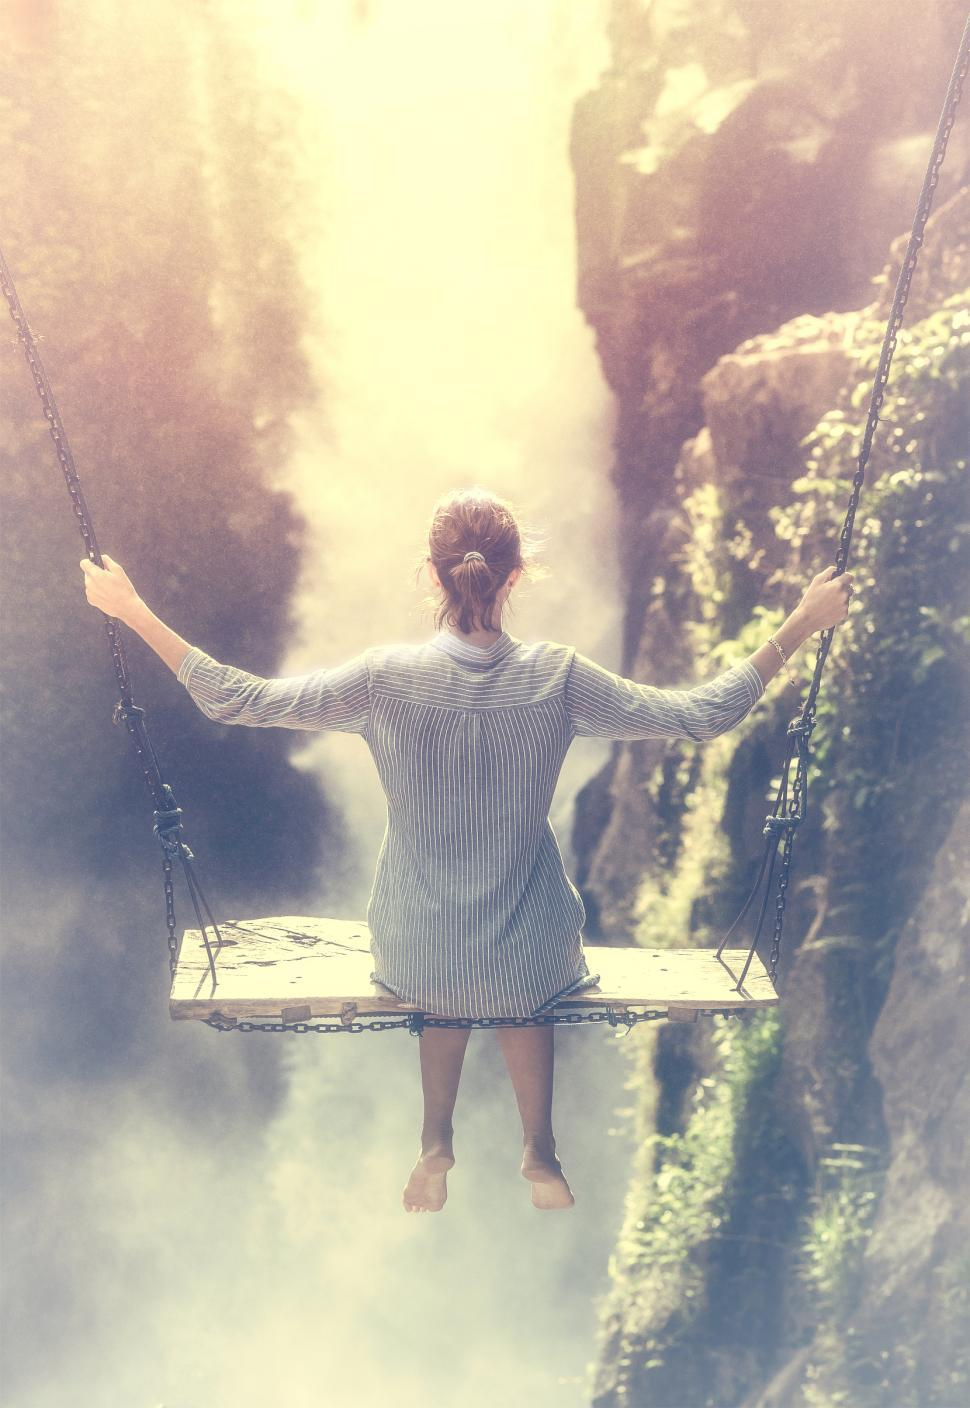 Download Free Stock Photo of Young Woman on a Swing in Front of Waterfall